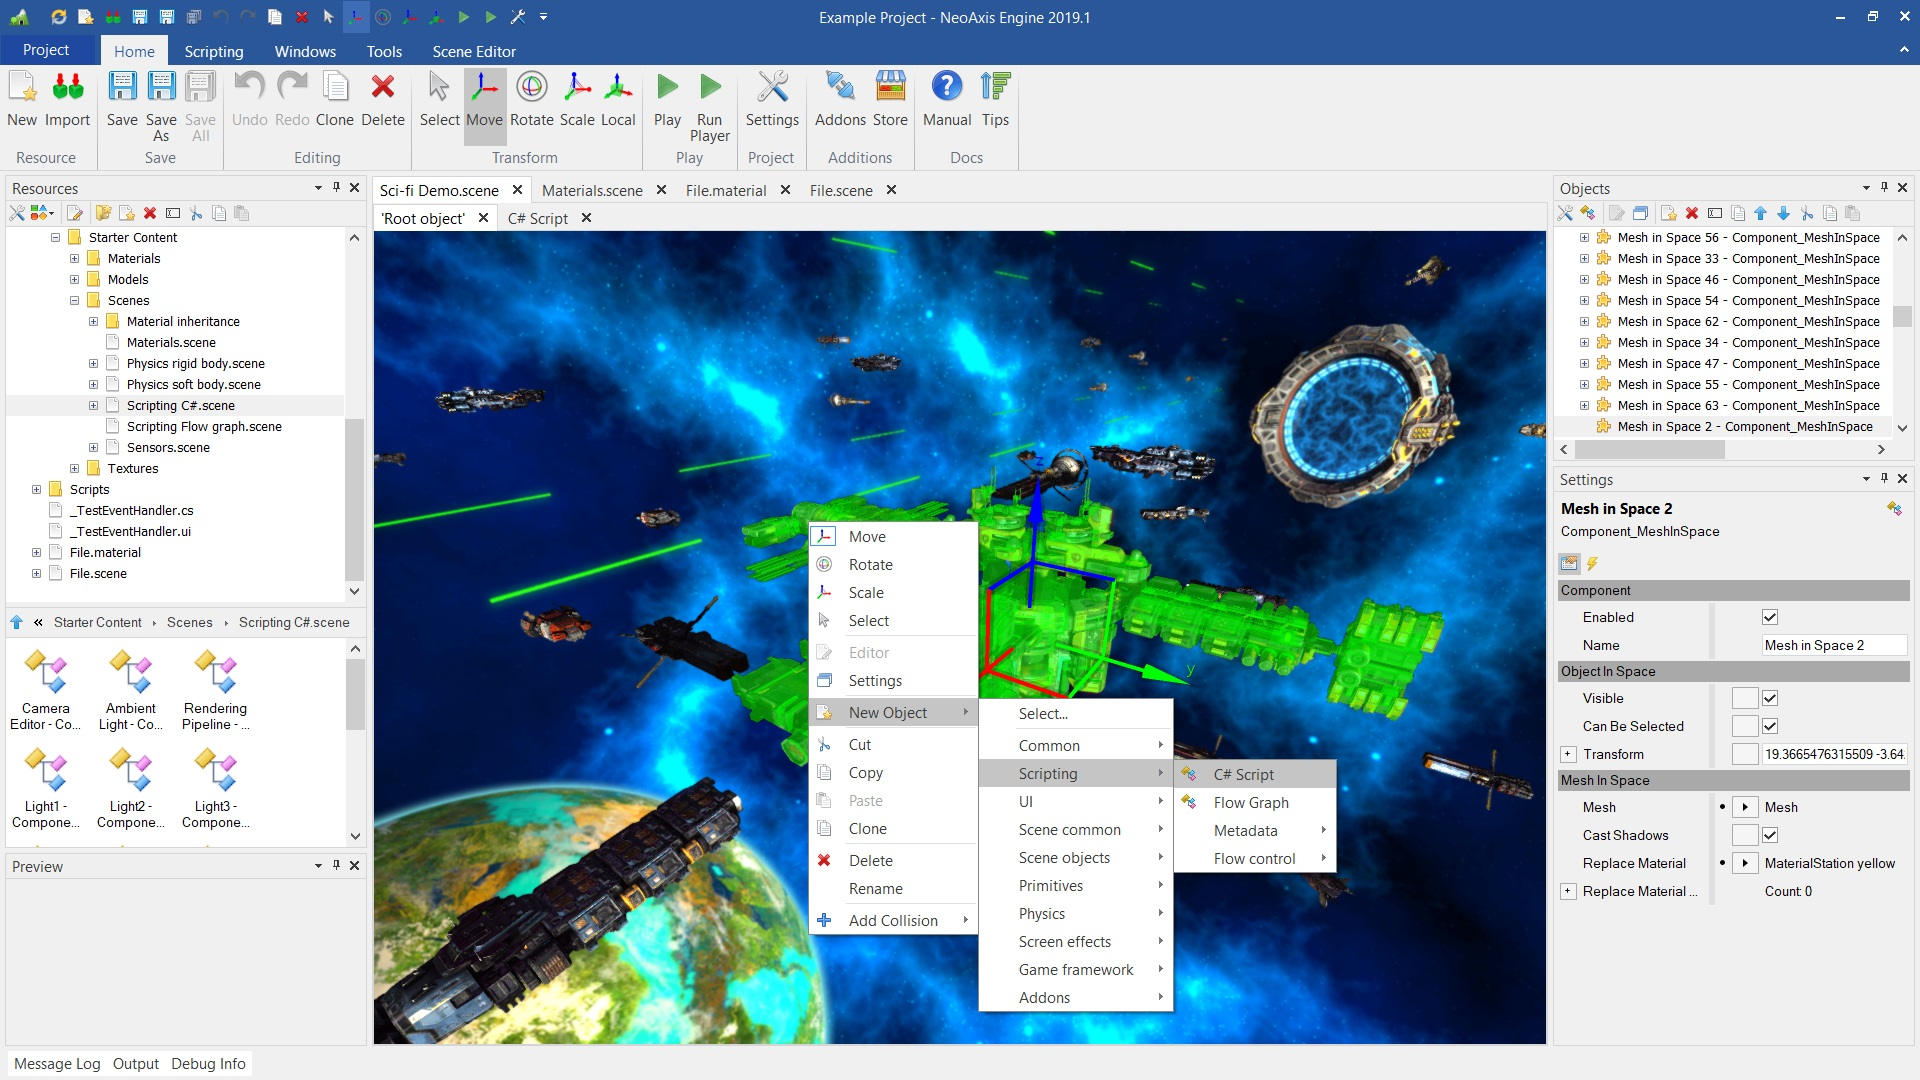 NeoAxis Engine 2019 1 Released | NeoAxis Engine